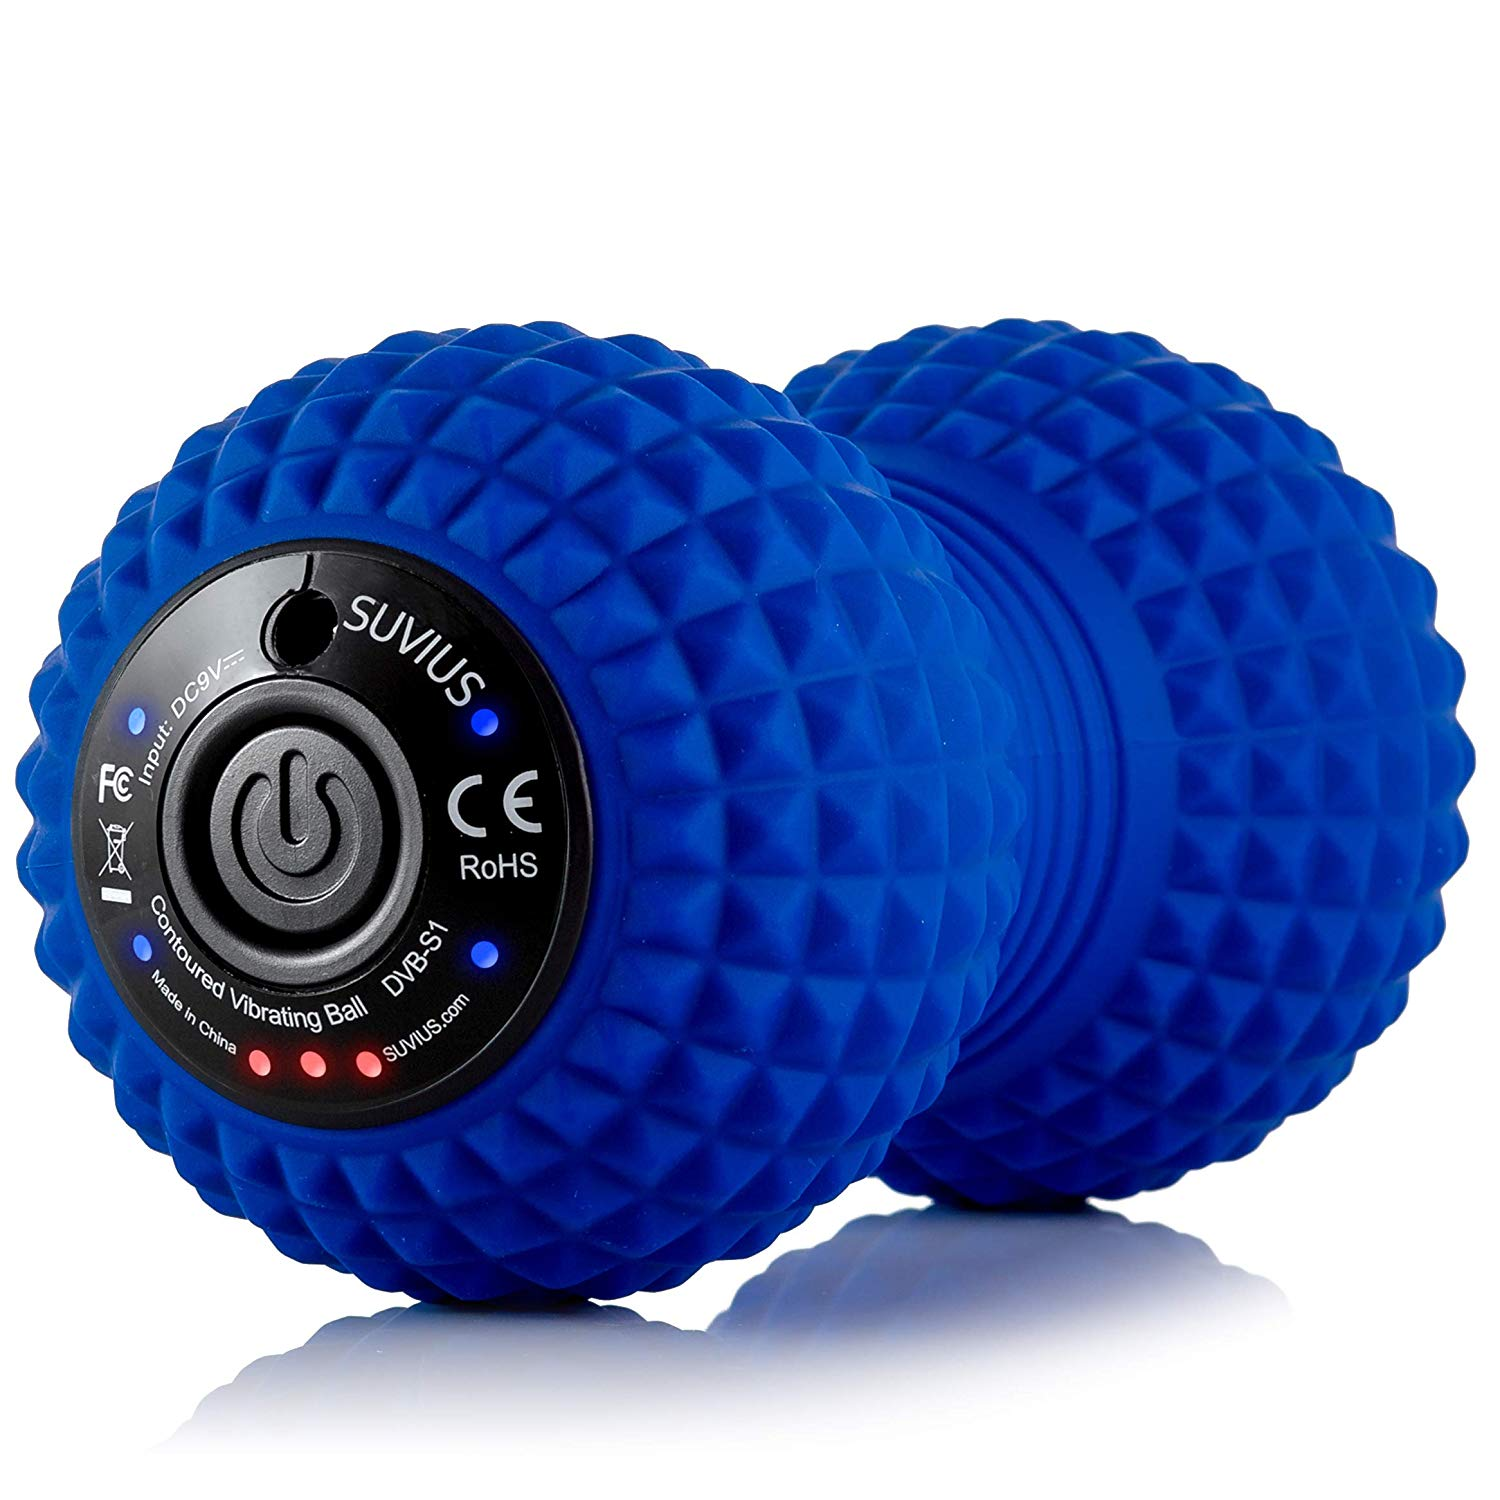 fascia friend - vibrating foam roller - Brings together the power of vibration with body rolling or foam rolling! Very powerful and a great tool to have on hand! Increase circulation, break up knots, and smooth and loosen up tight muscles and fascia.